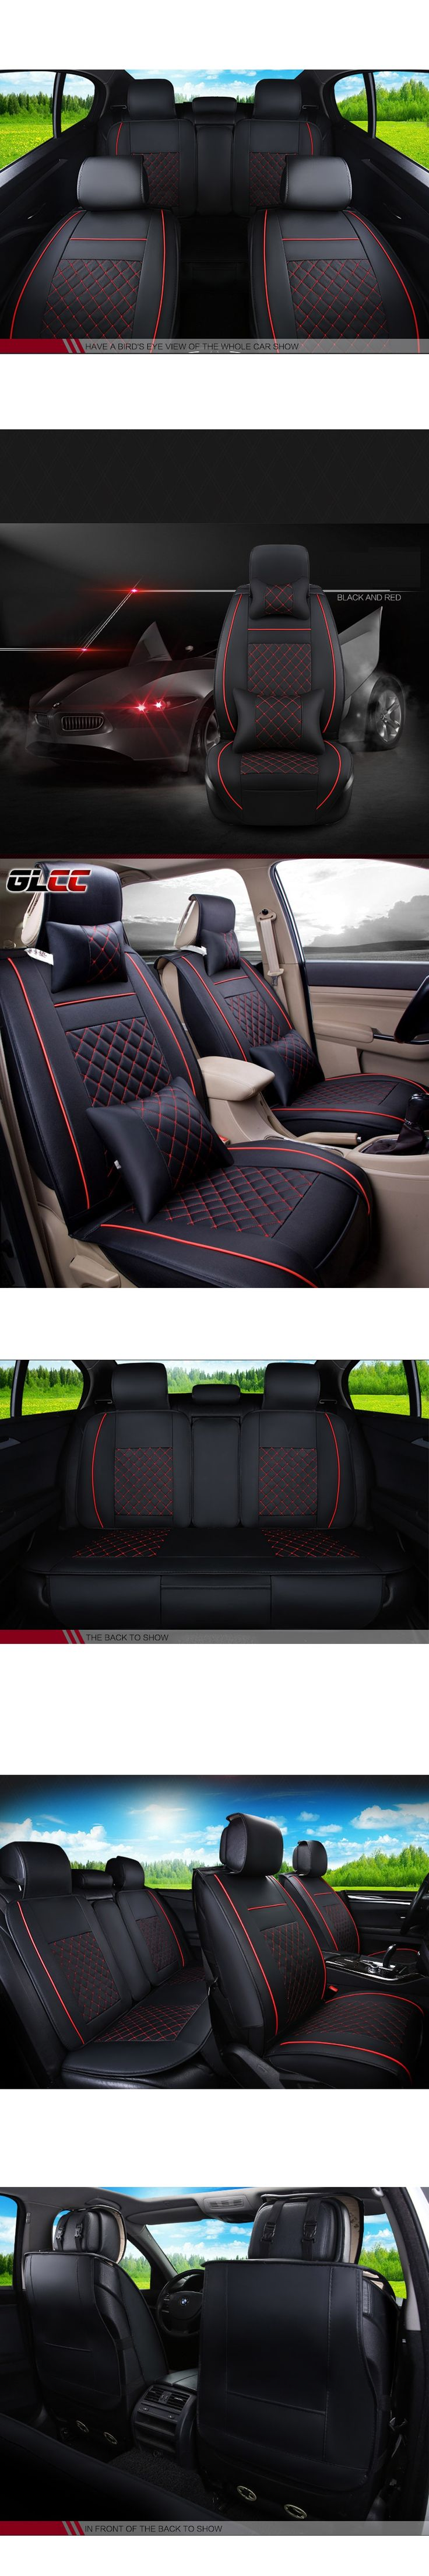 4colours Pu Leather Car Seat Covers Universal Fit Full Surrounded Automobiles Cover For 5seats Interior